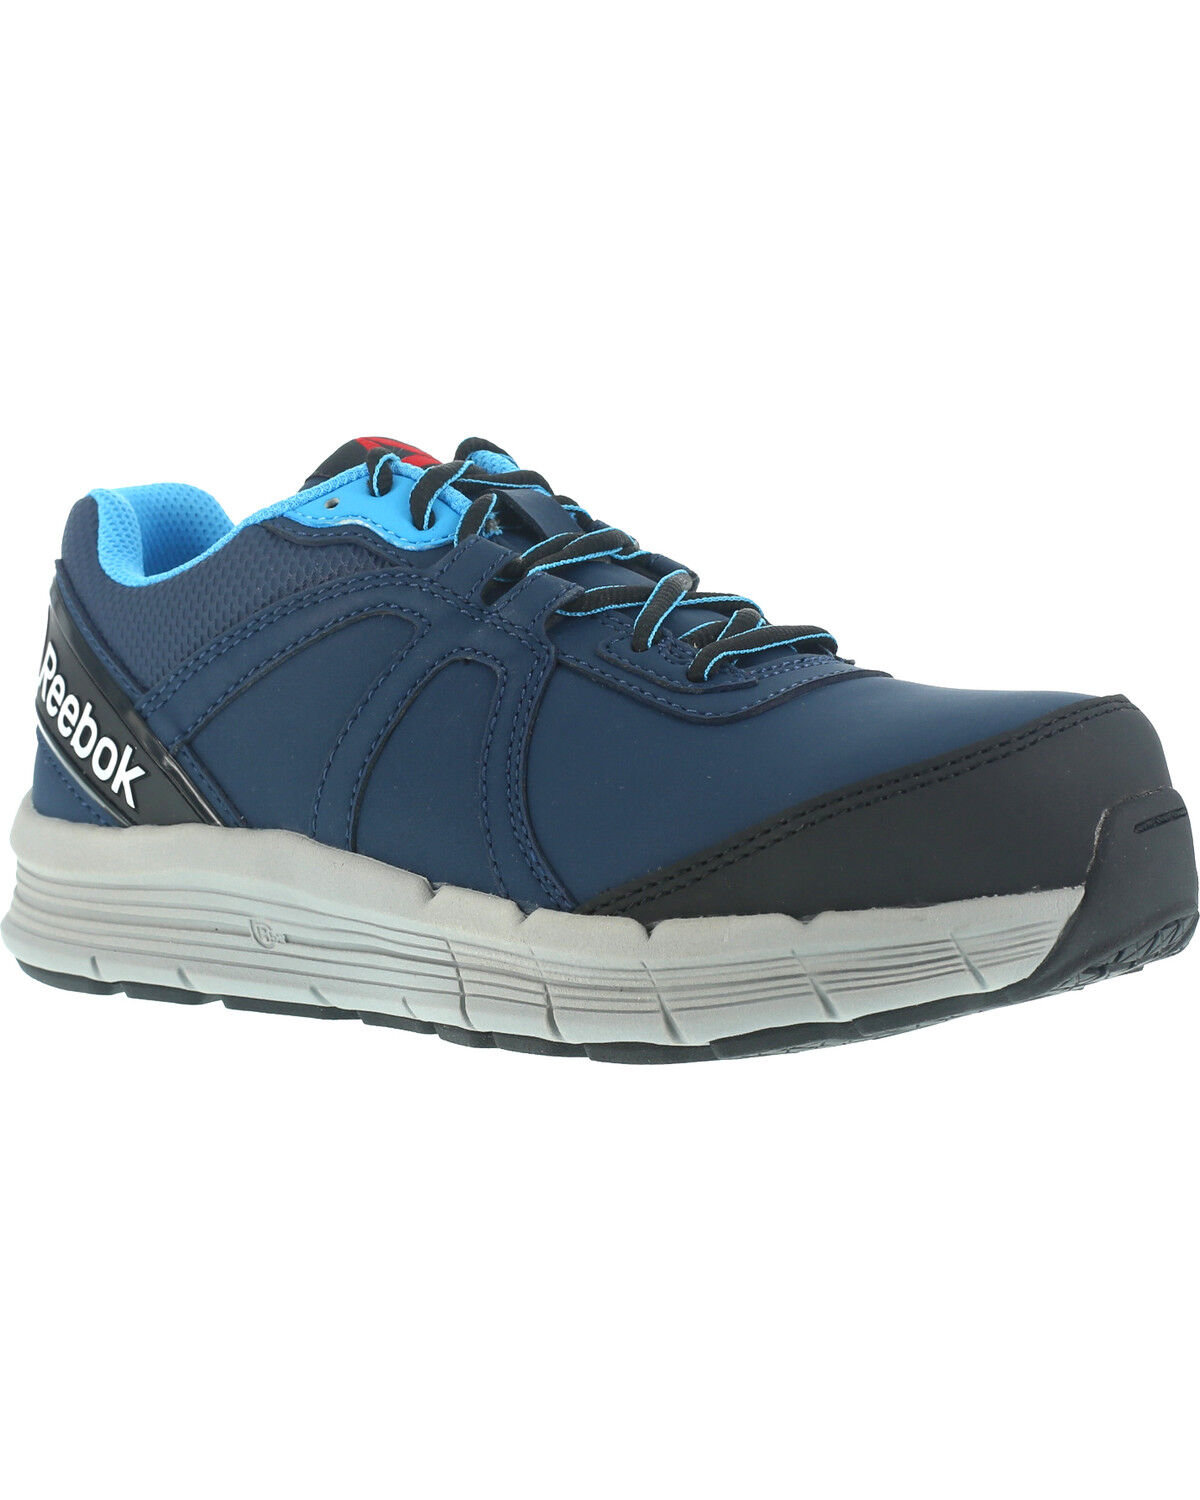 9690fbe1e1dc2d ... static dissipative leather athletic work shoe a8193 32ba9  canada  reebok womens guide athletic oxford work shoes steel toe navy hi res 2dd1b  8989a